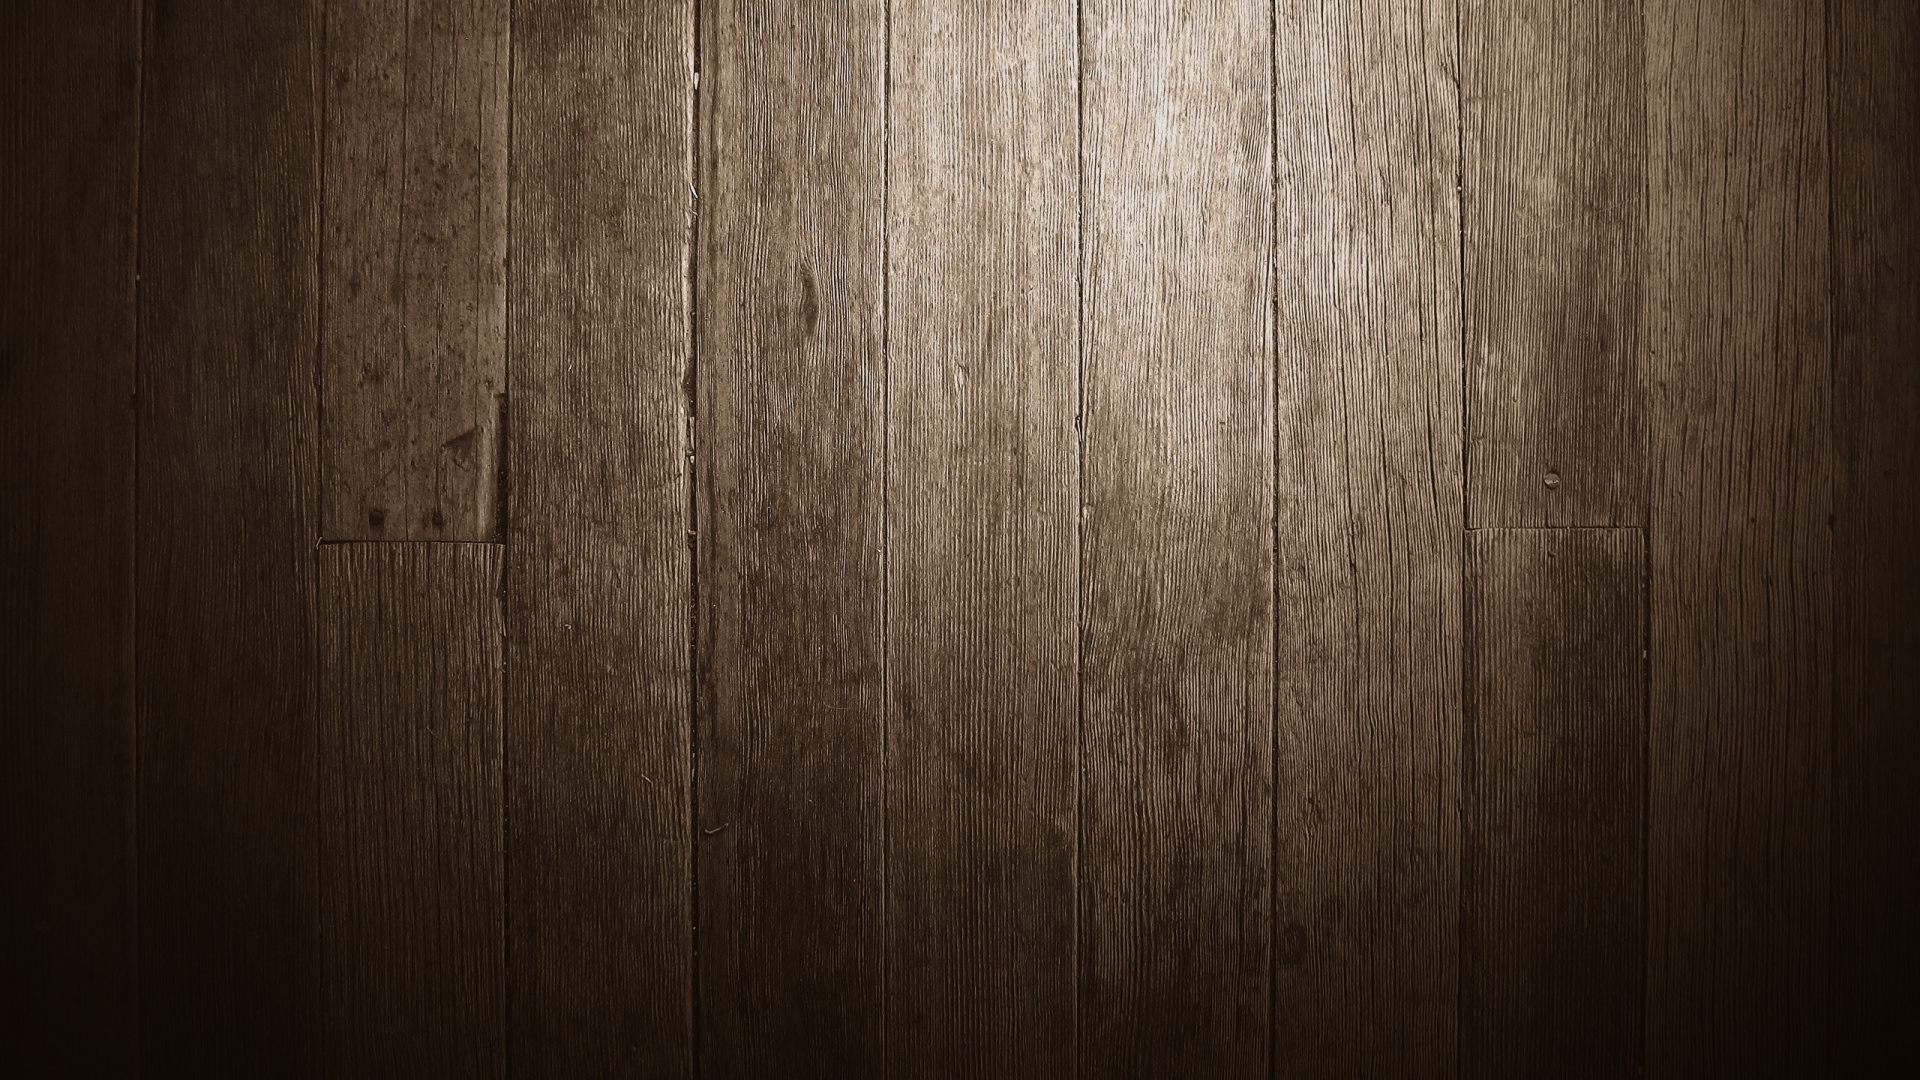 Wooden Desk Wallpapers Group (83+)